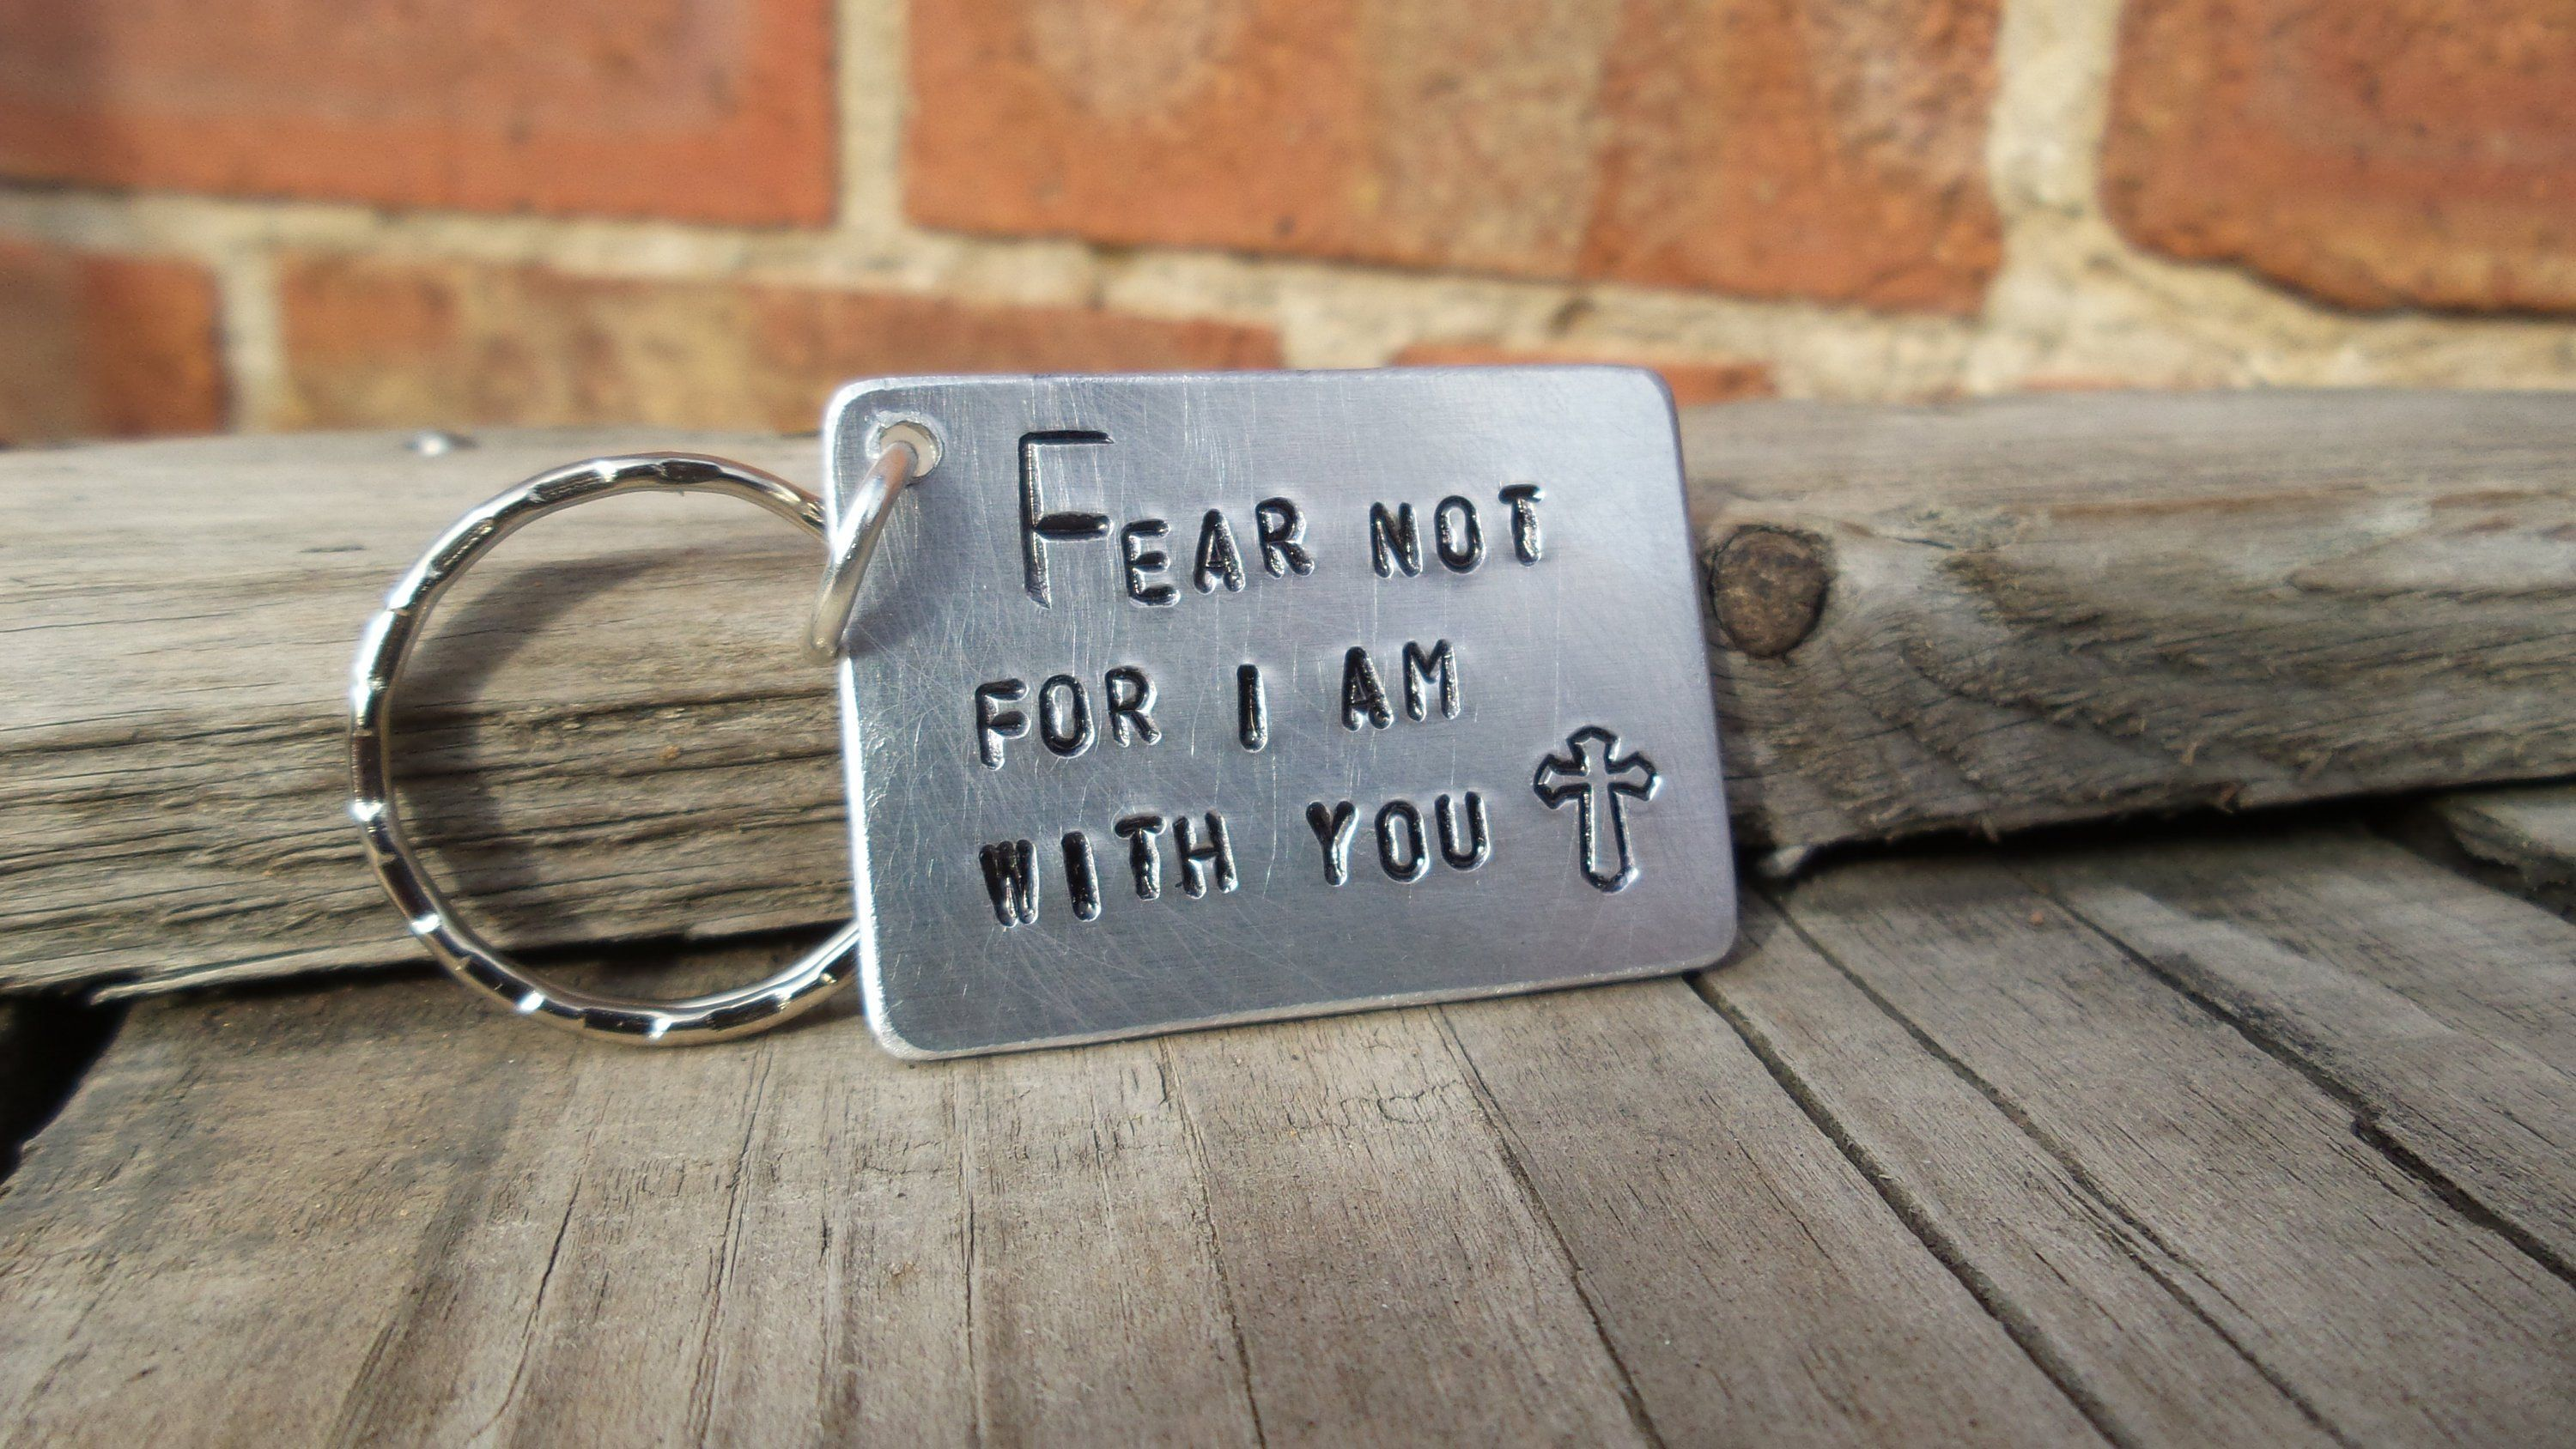 Fear not for i am with you baptism gifts for him her